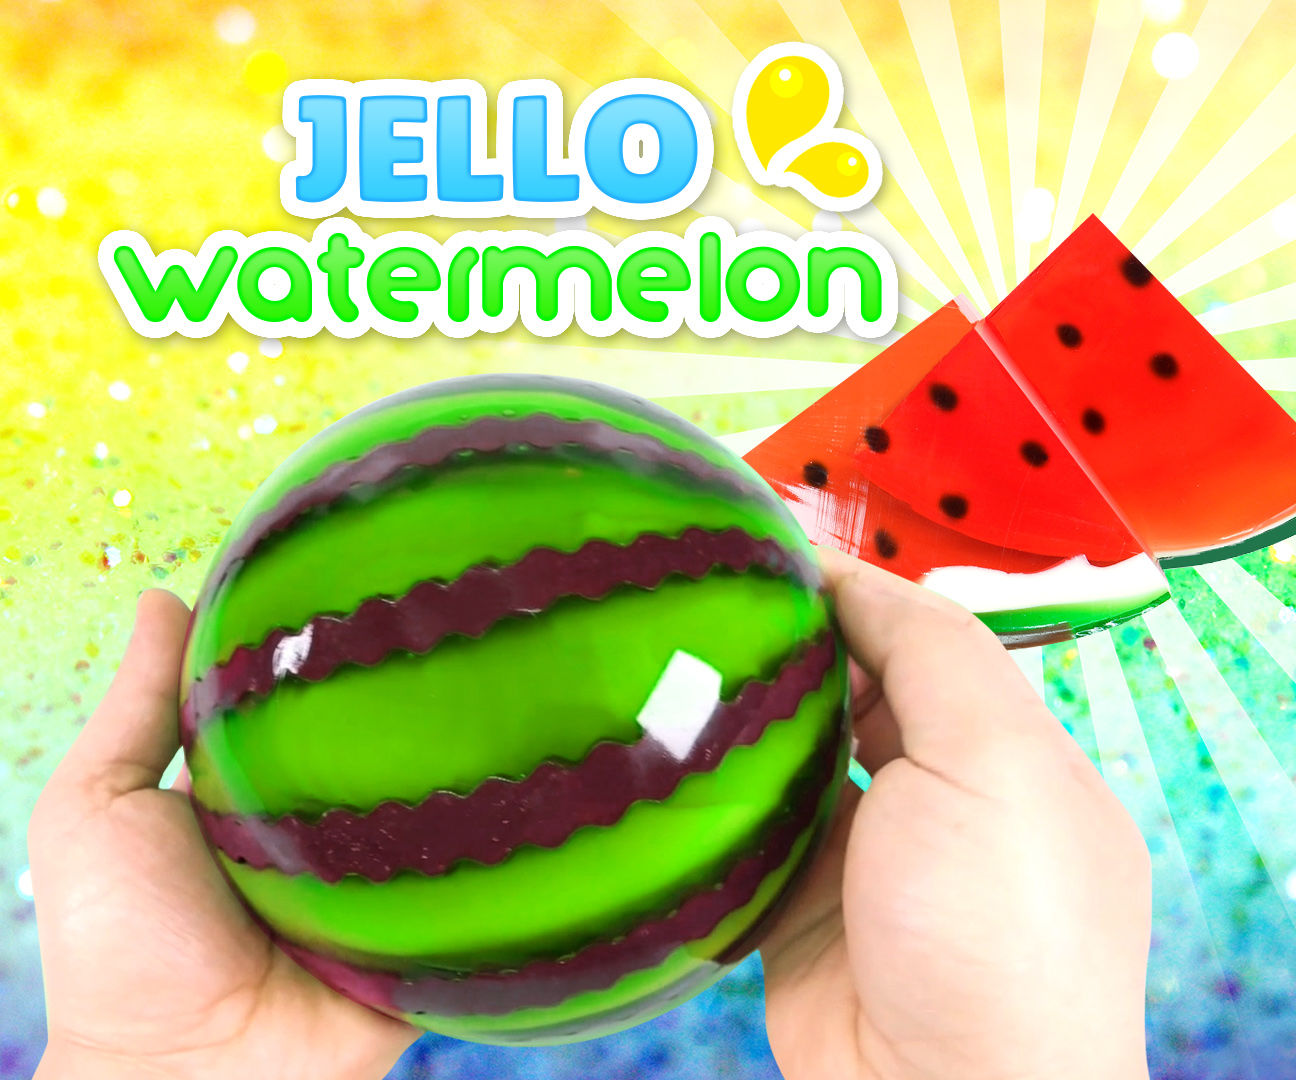 How to Make a Jello Watermelon !! GUMMY JELLO WATERMELON SLICES